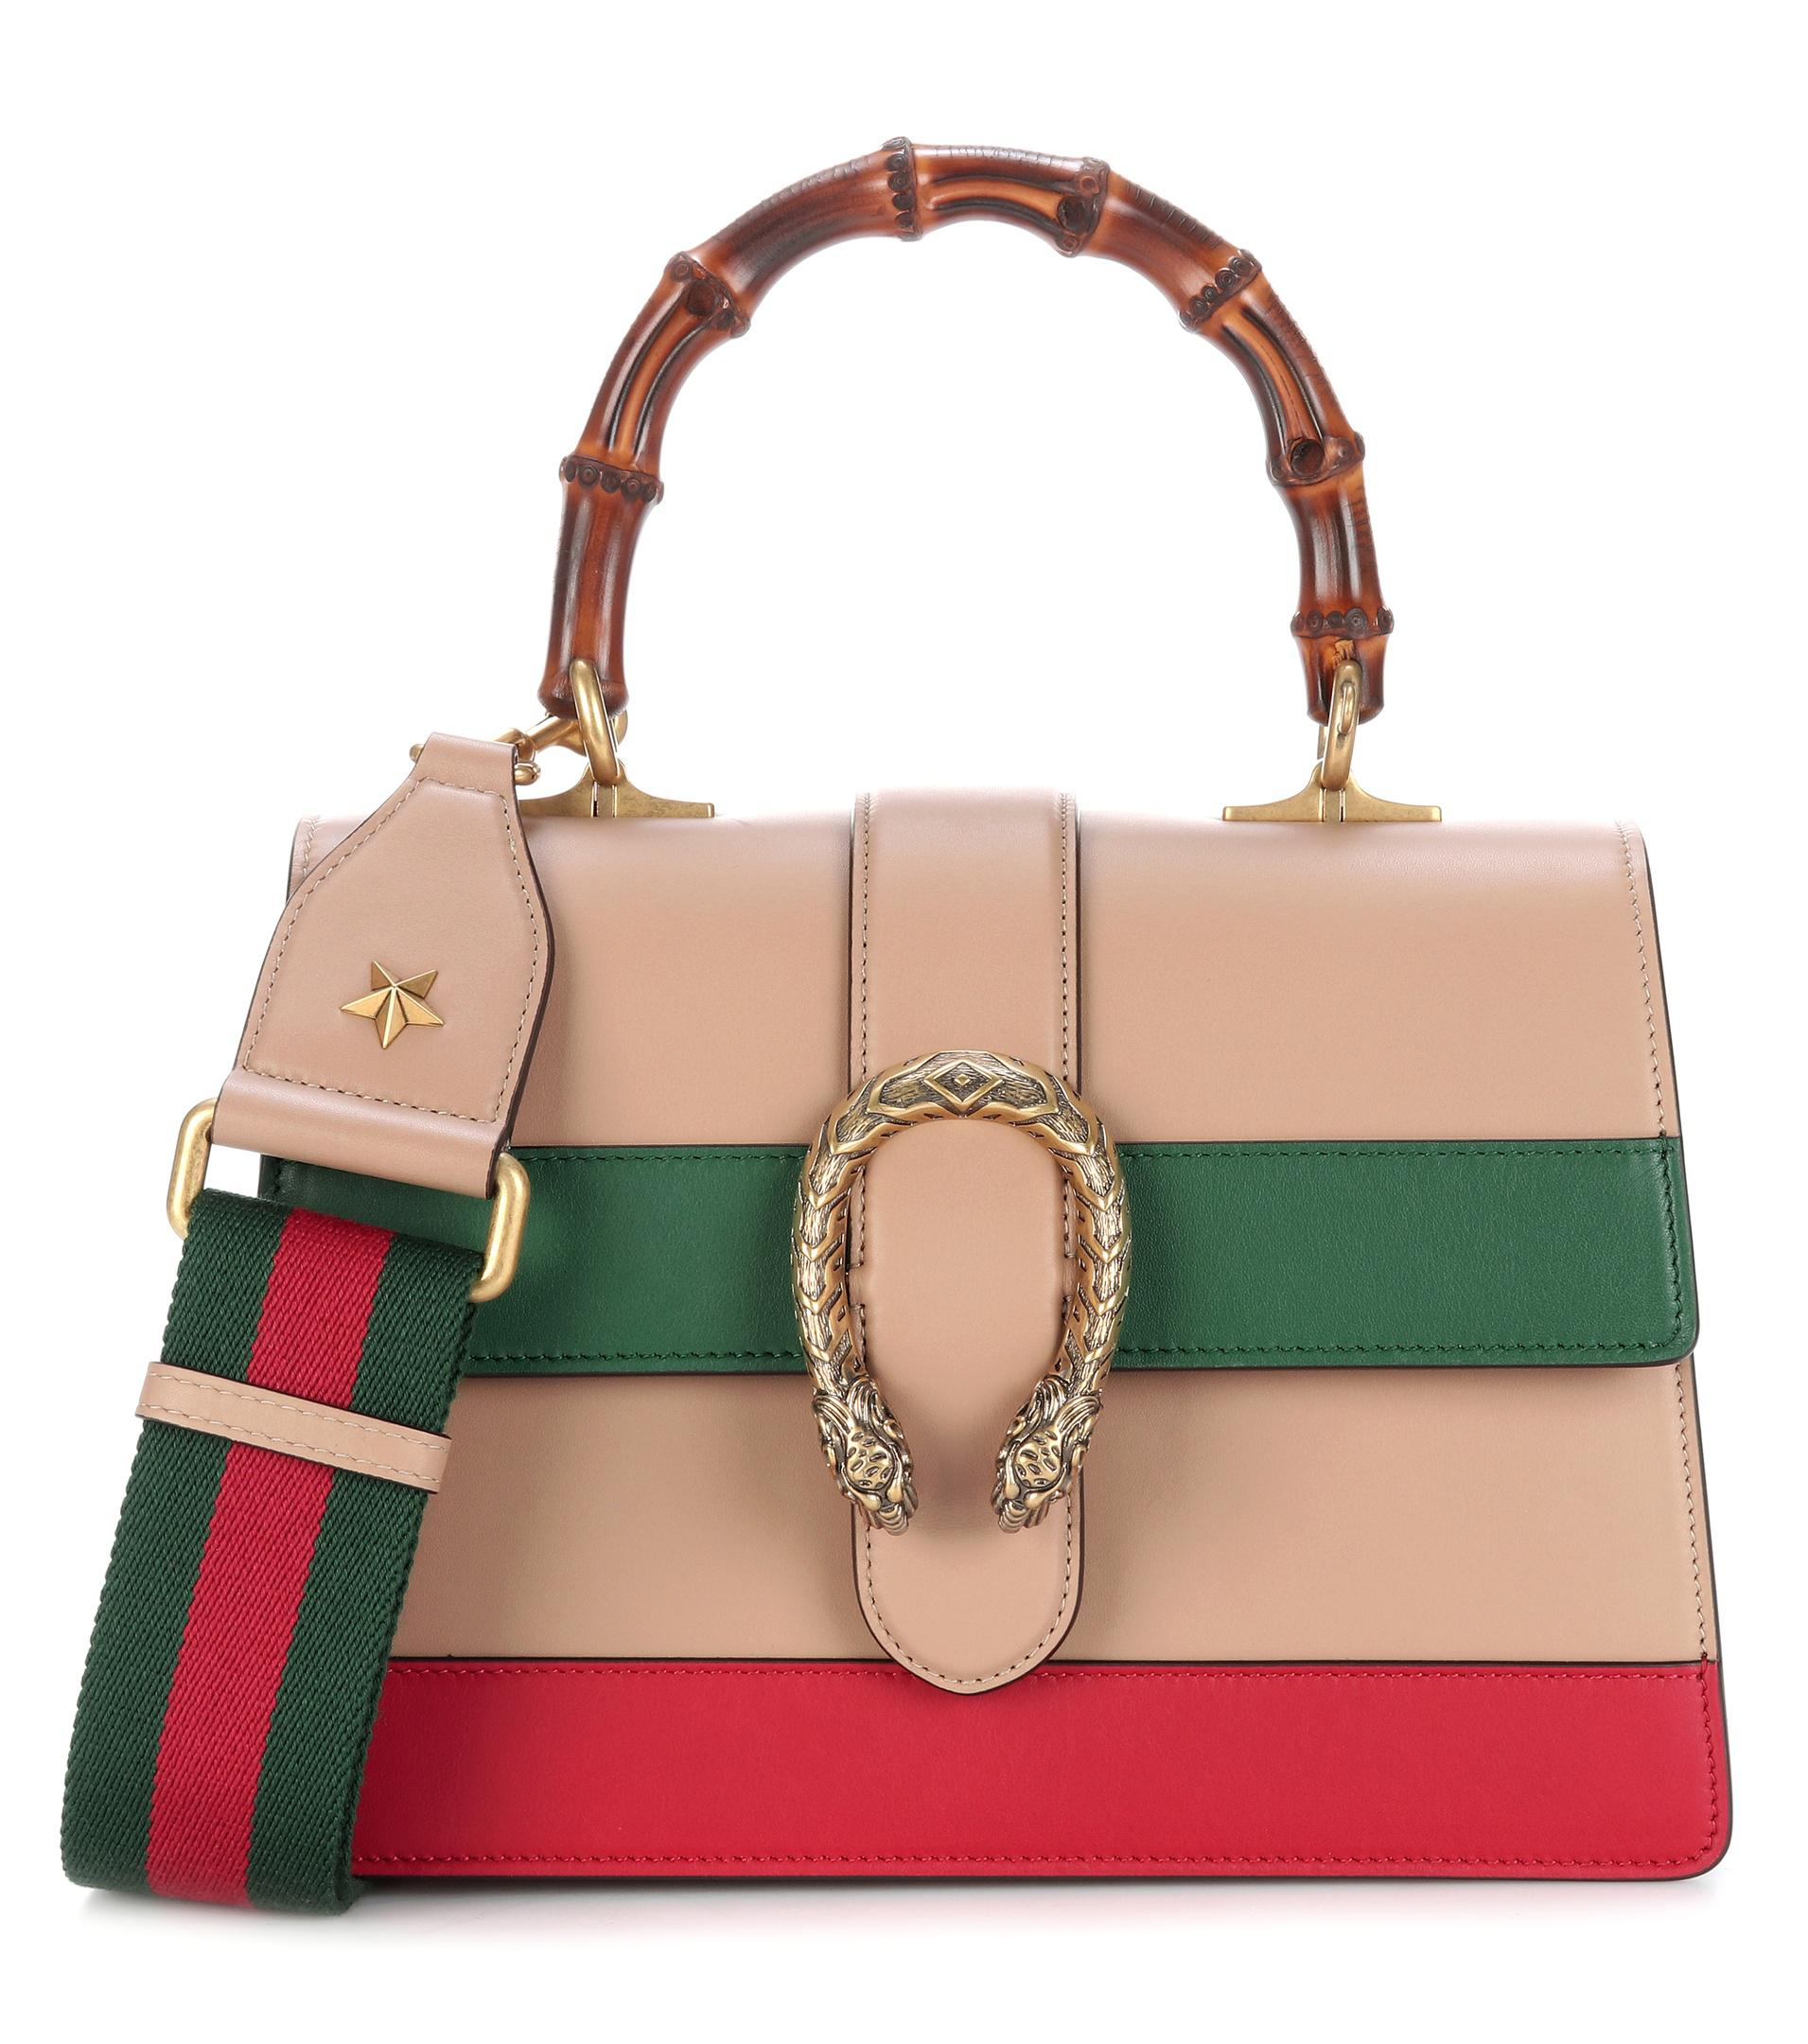 e4f9c0f92 Gallery. Previously sold at: Mytheresa · Women's Gucci Bamboo Bags Women's Gucci  Dionysus Bags